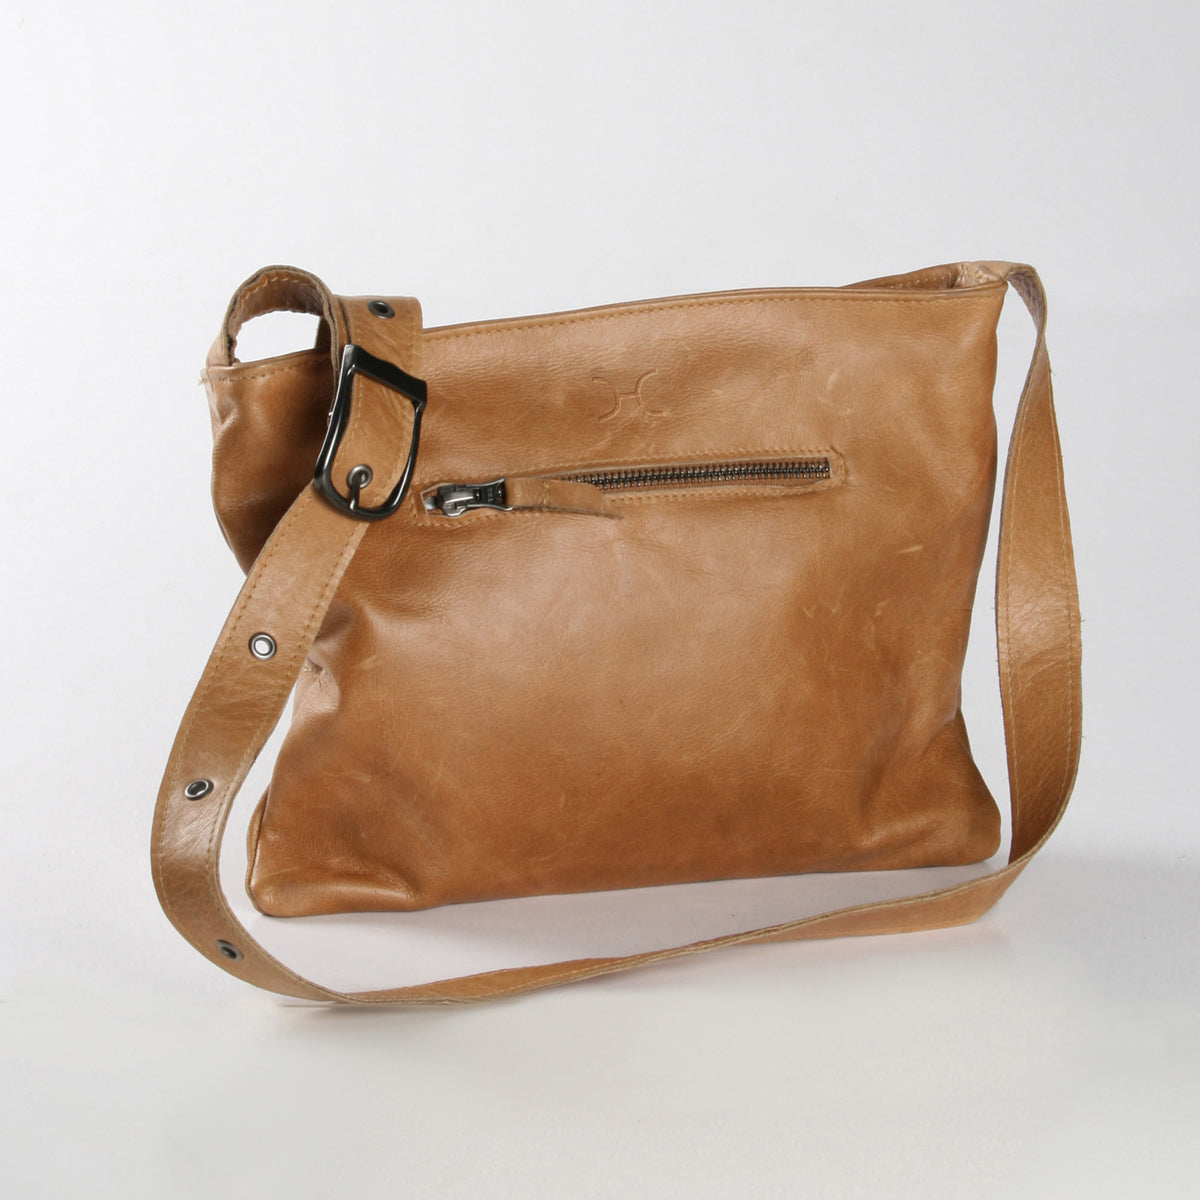 Thandana Mini Messenger Sling Bag - Hazelnut - Zufrique Boutique